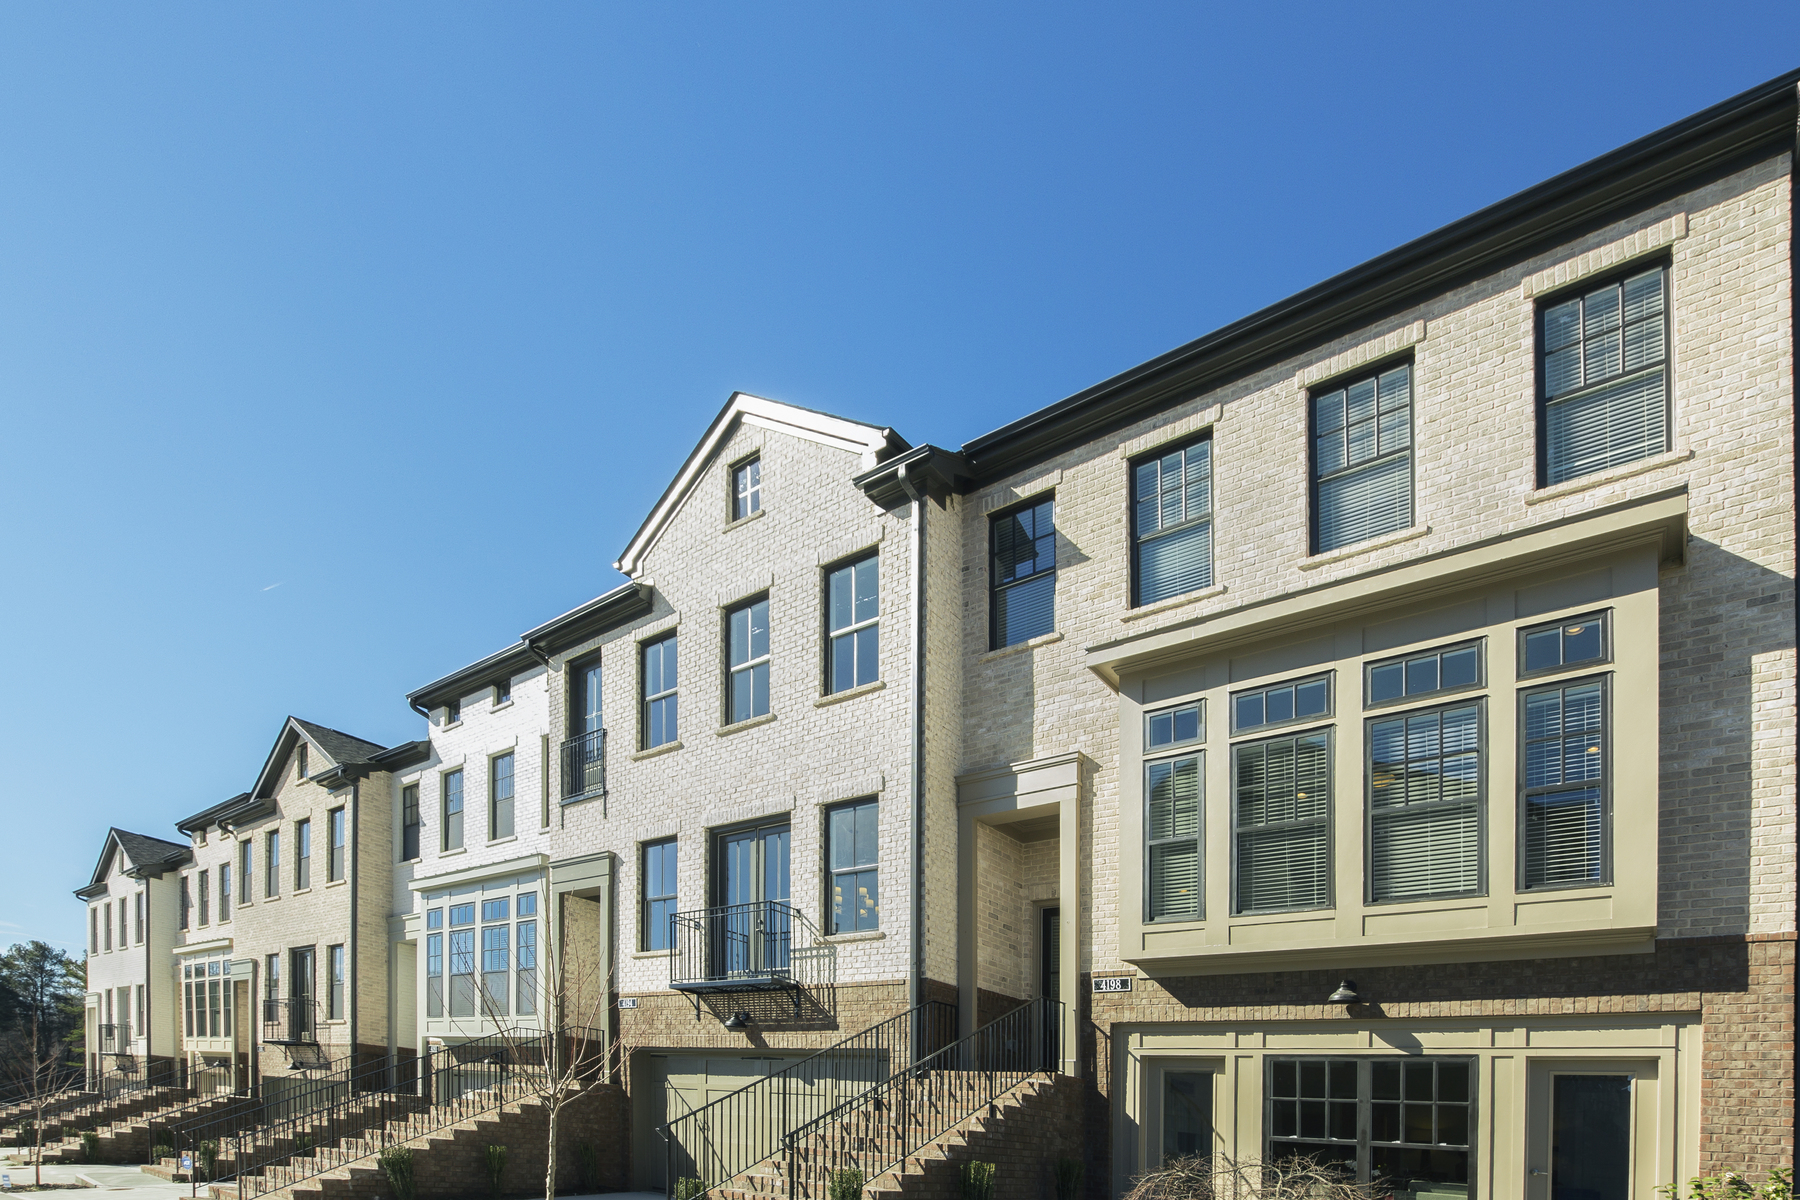 Residência urbana para Venda às New Construction Townhome in the Heart of Dunwoody 4330 Georgetown Square Unit 3 Dunwoody, Geórgia, 30338 Estados Unidos